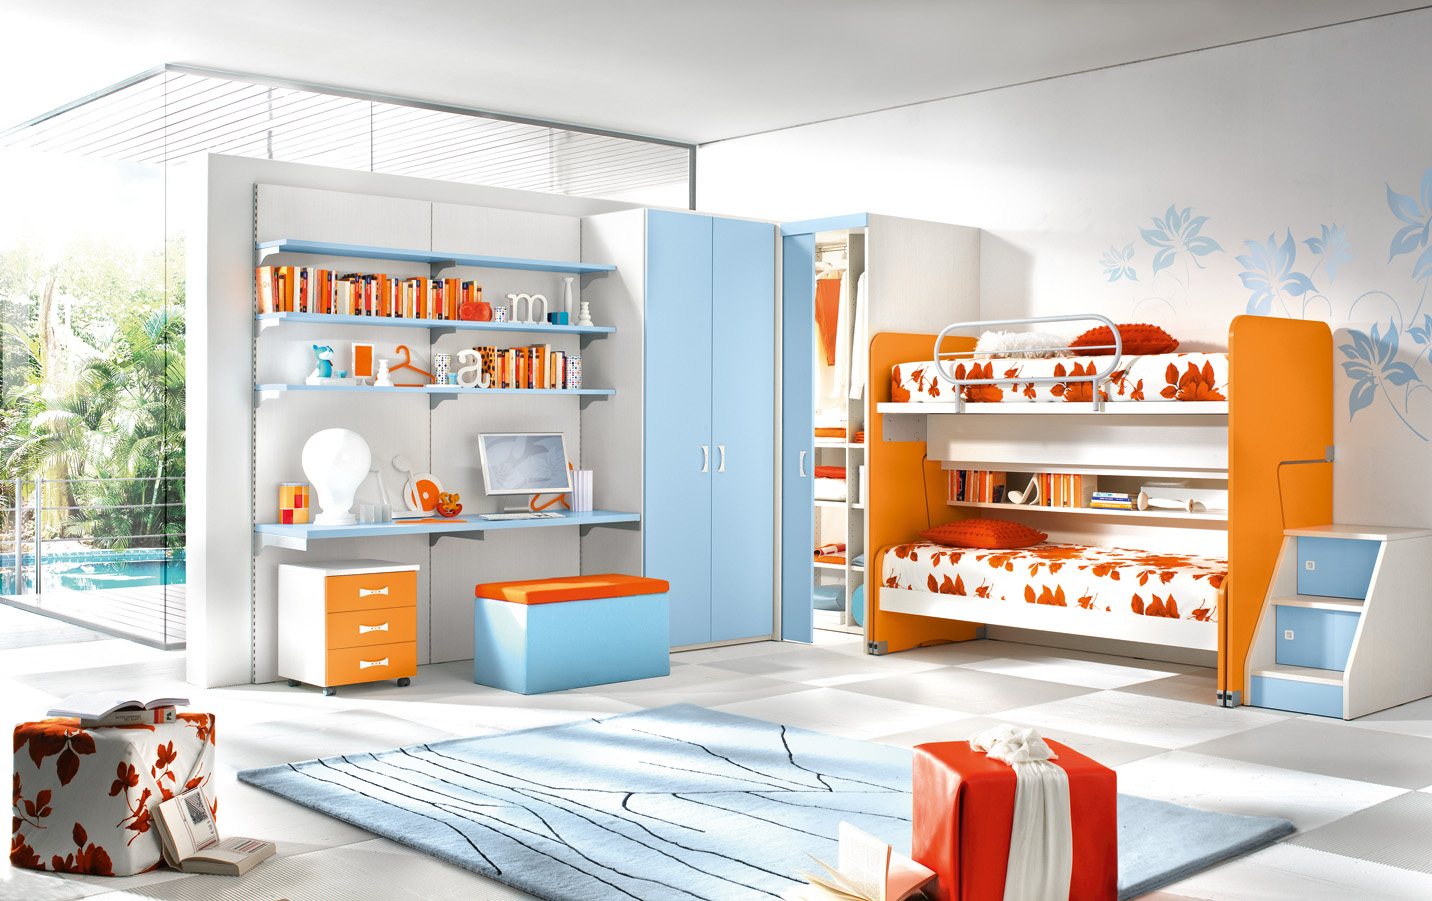 20 contemporary kids room interior design ideas for Modern bunk beds for kids